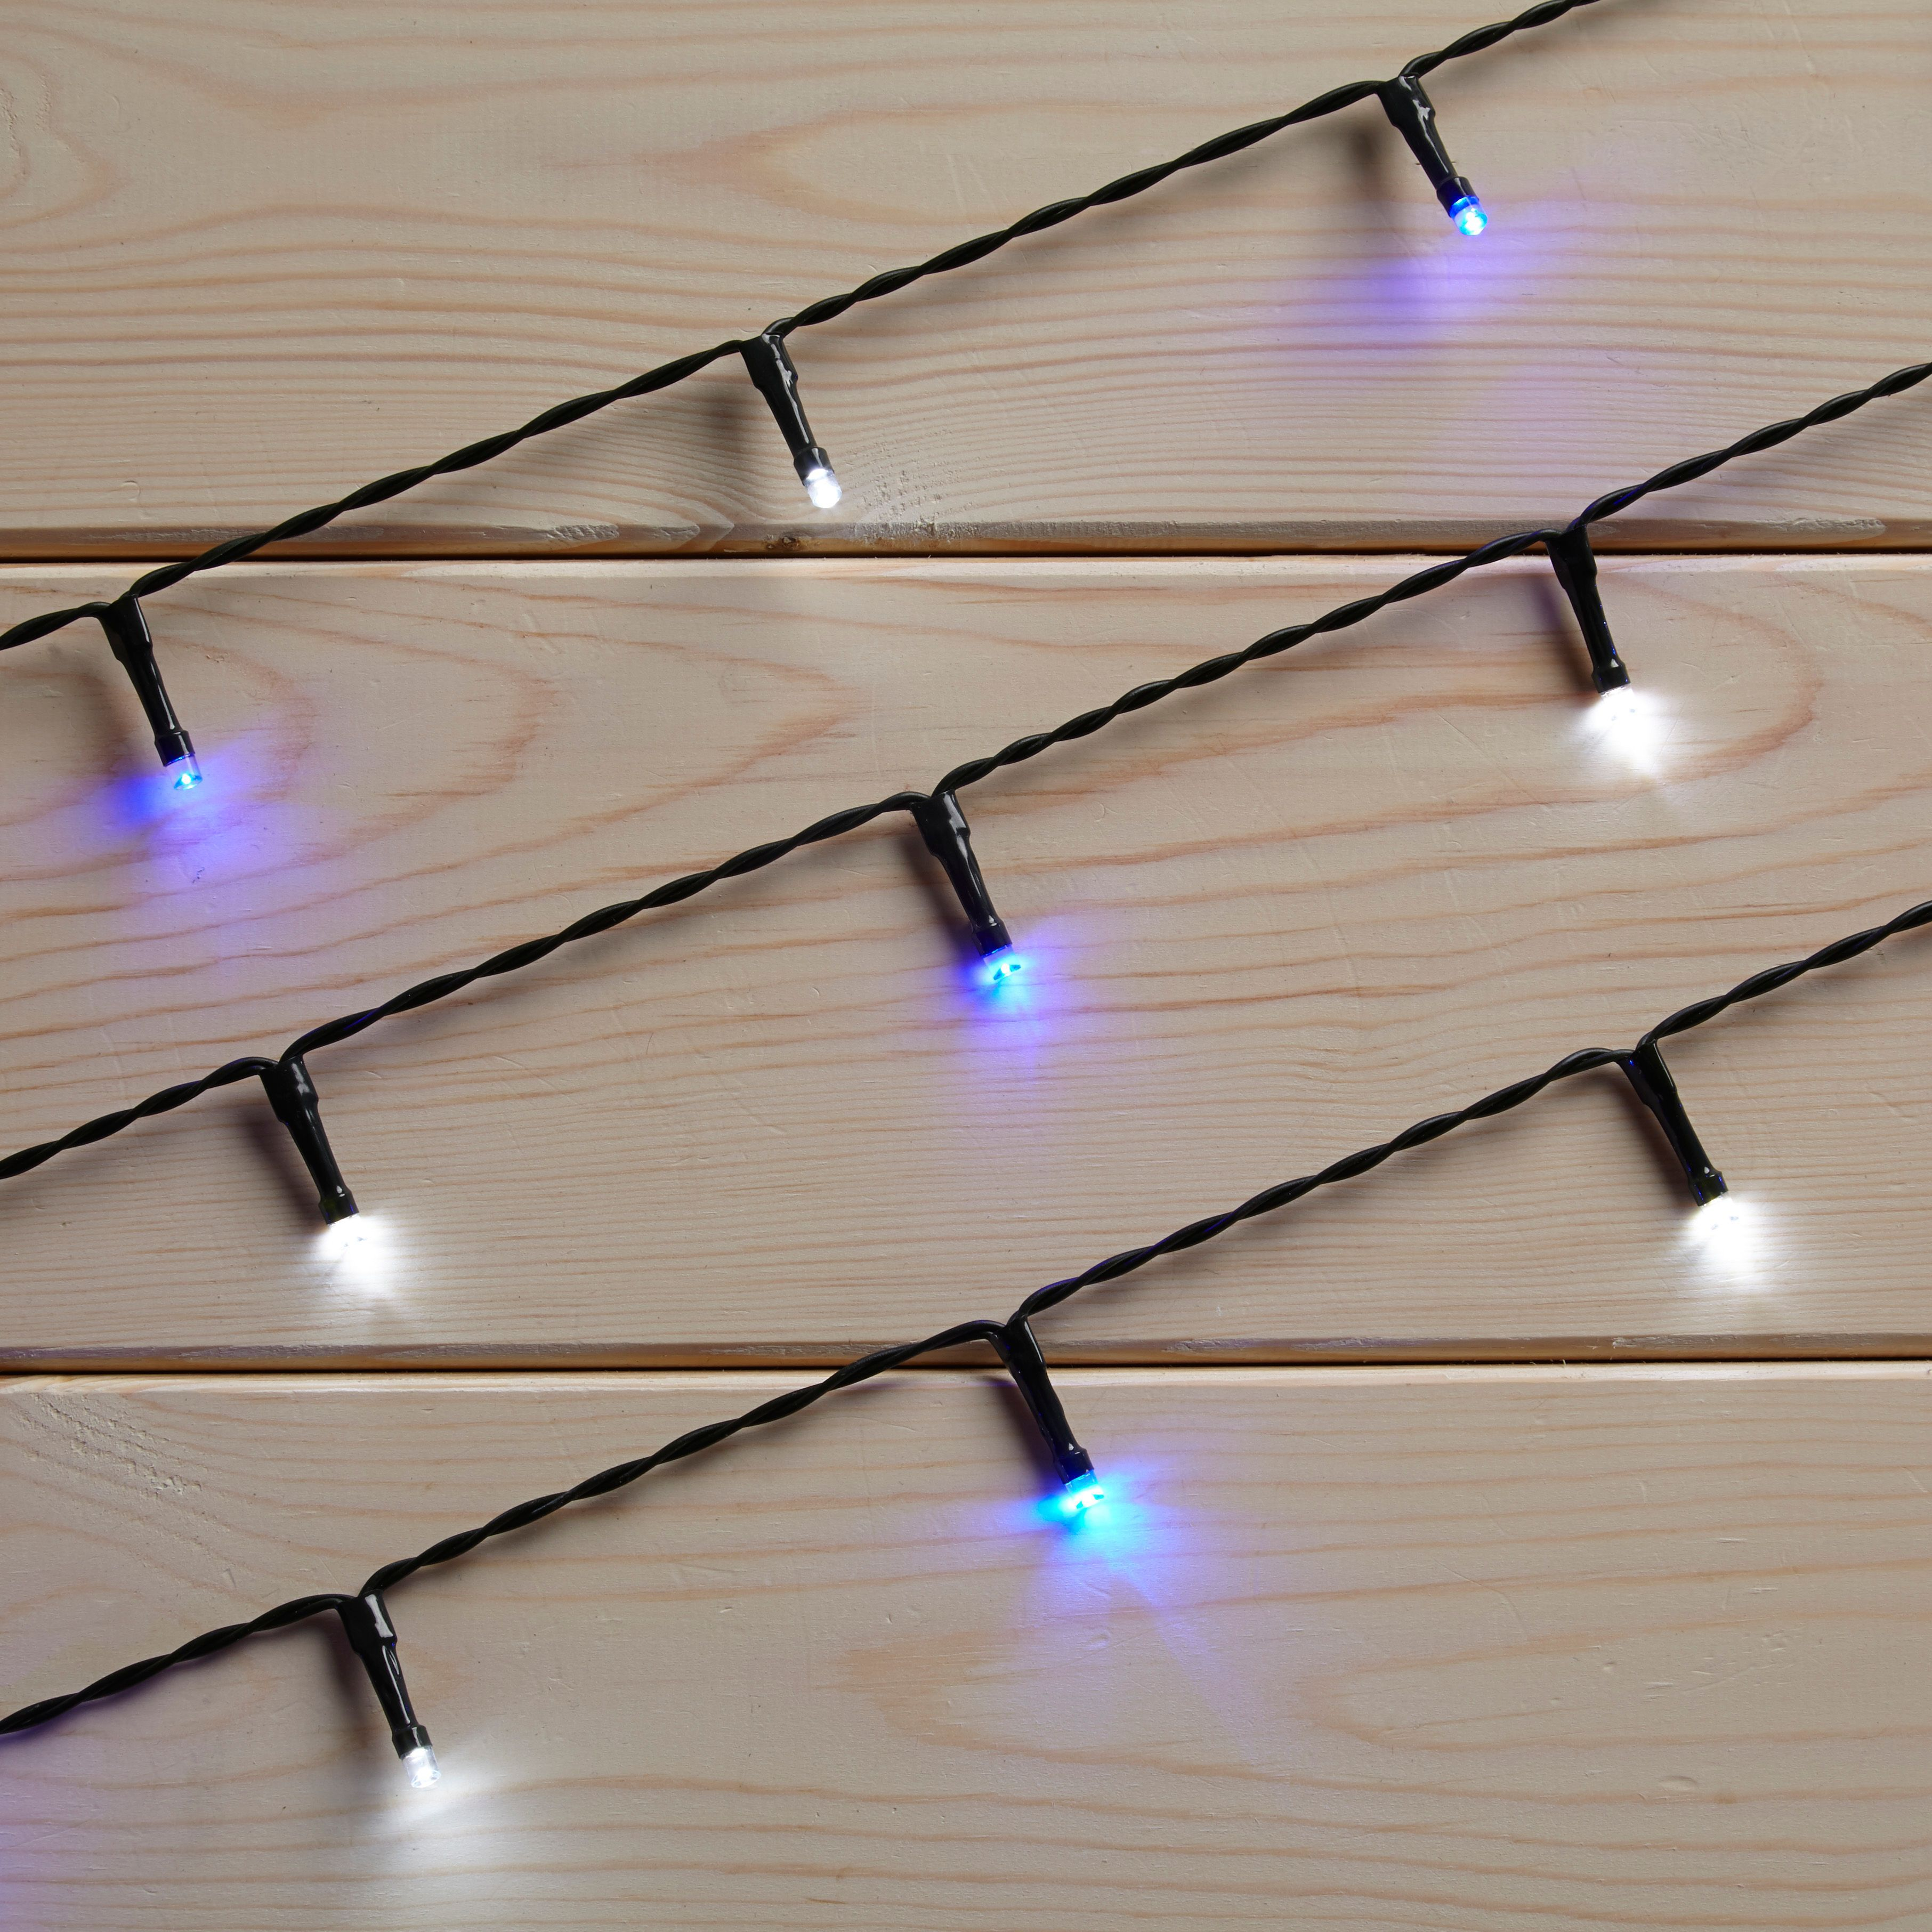 Led String Lights Diy : 200 LED String Lights Departments DIY at B&Q